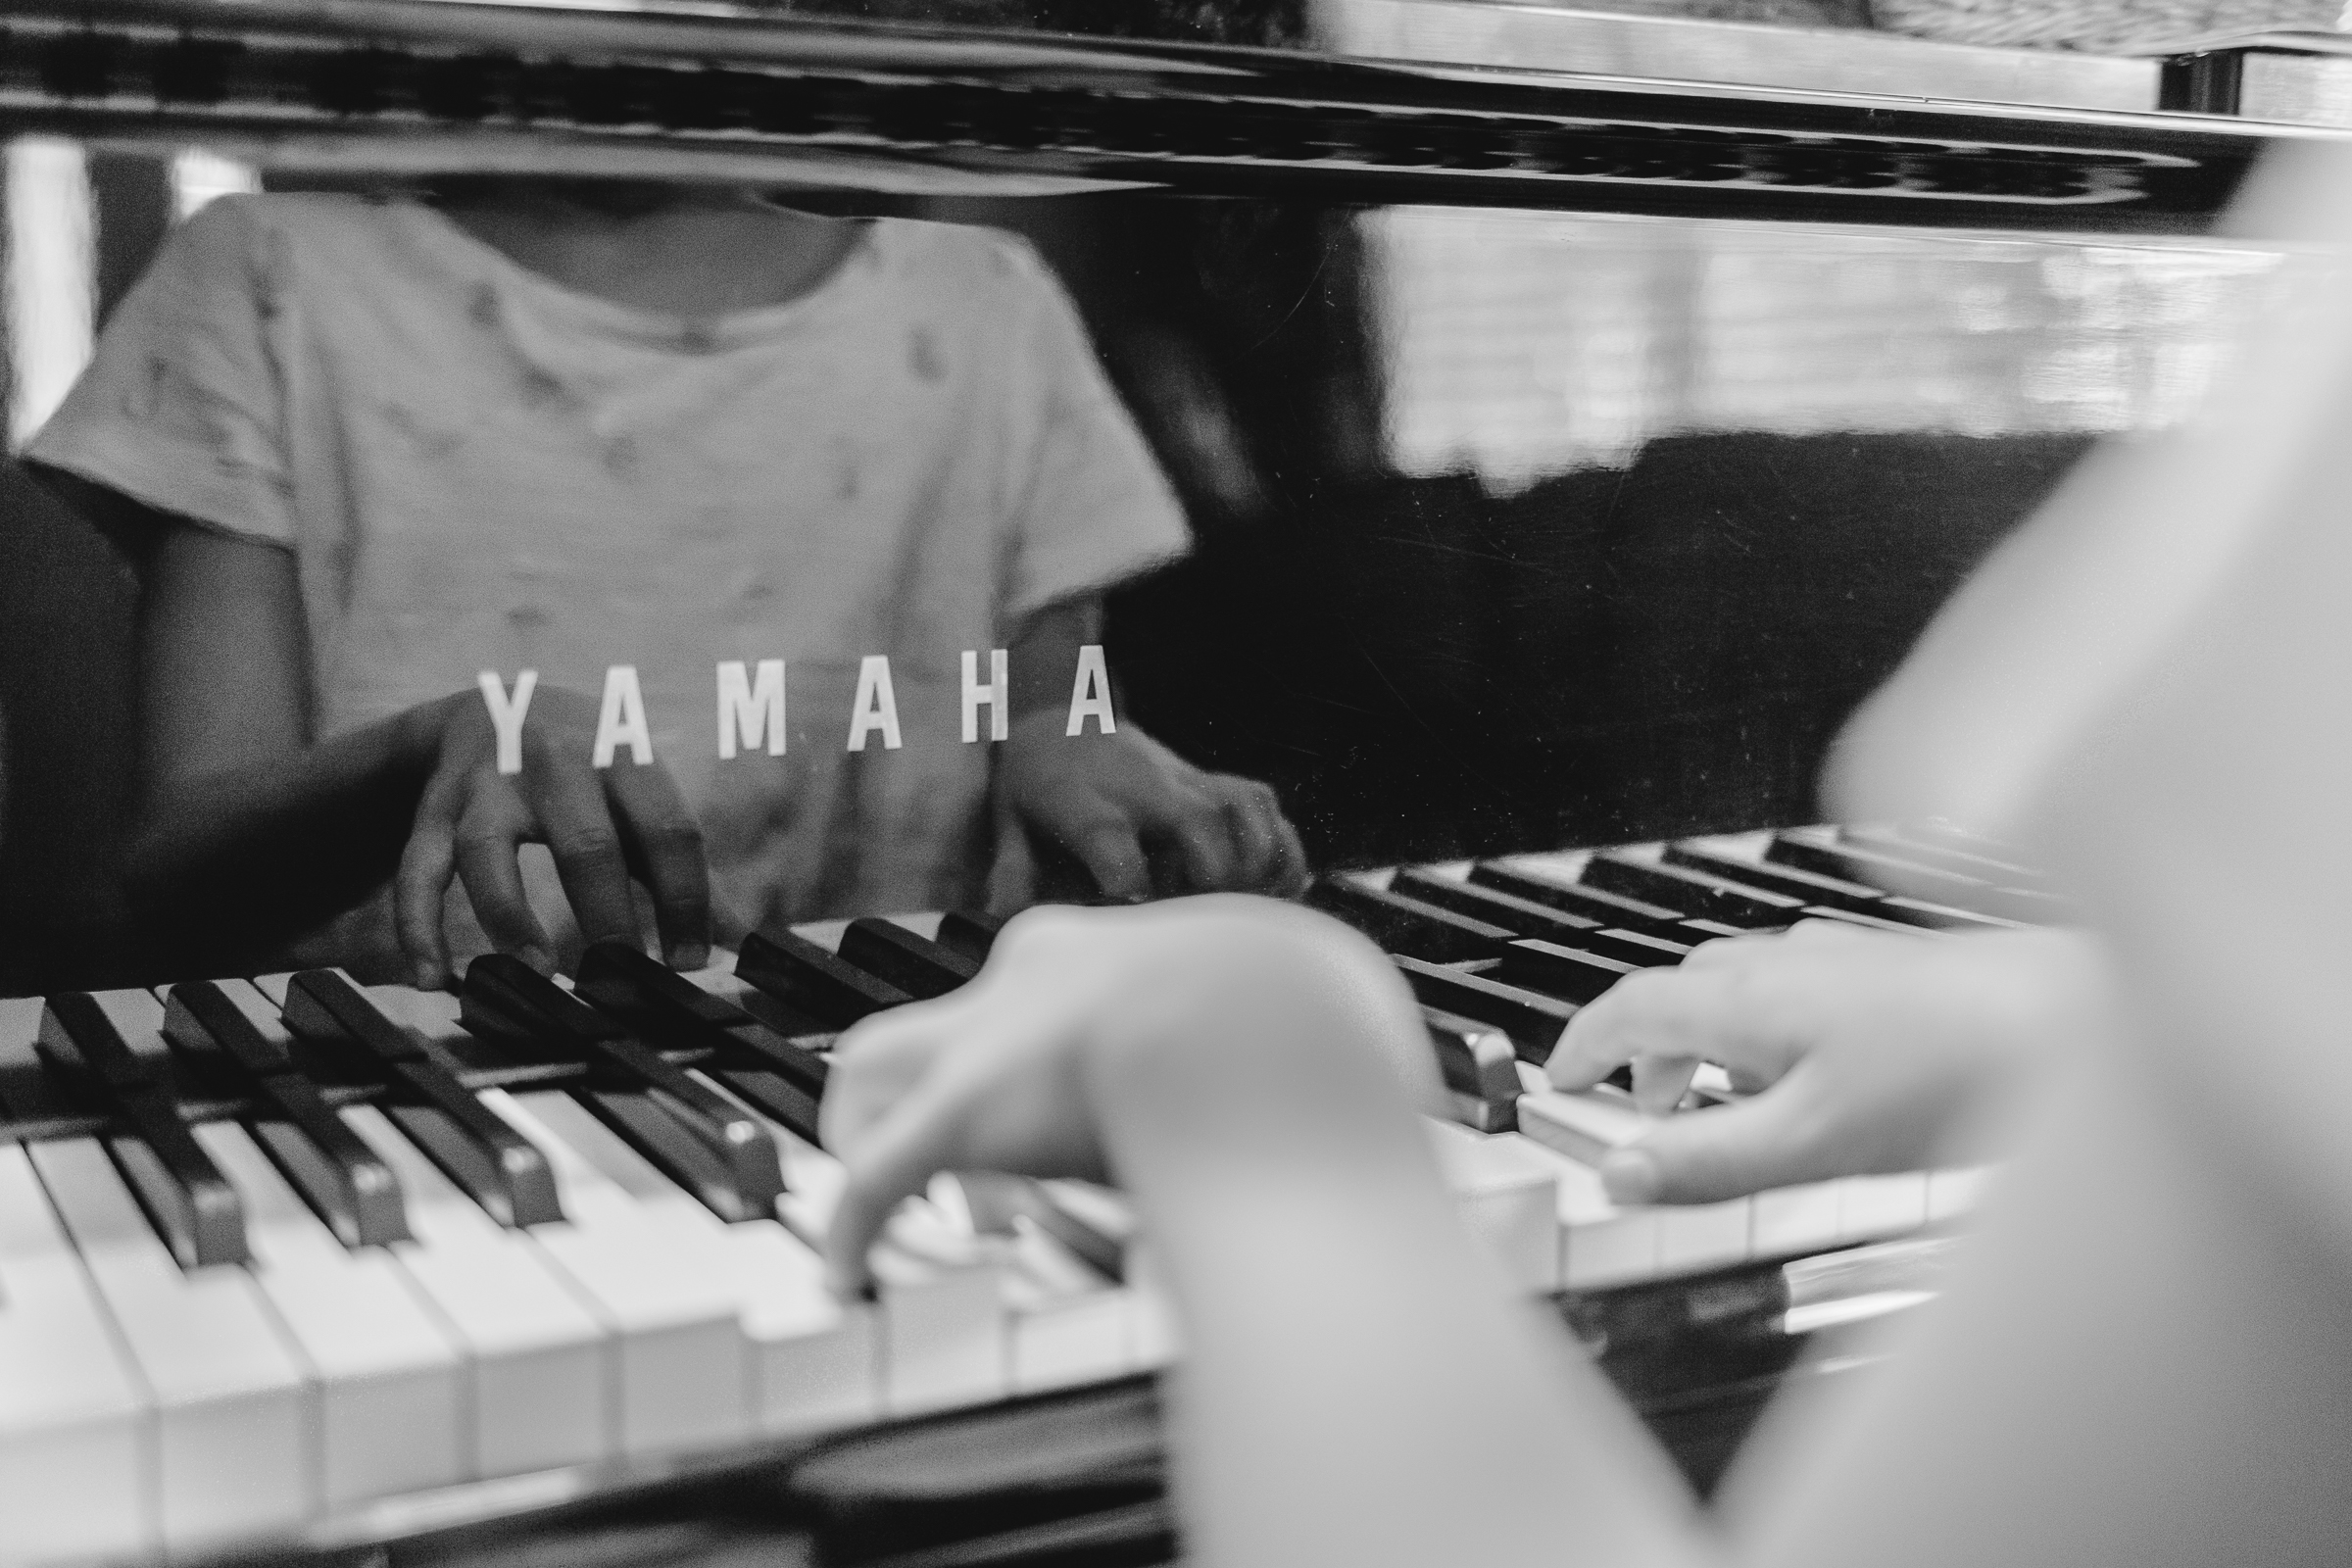 I always love the reflection of Jane's hands in the piano during her lesson.